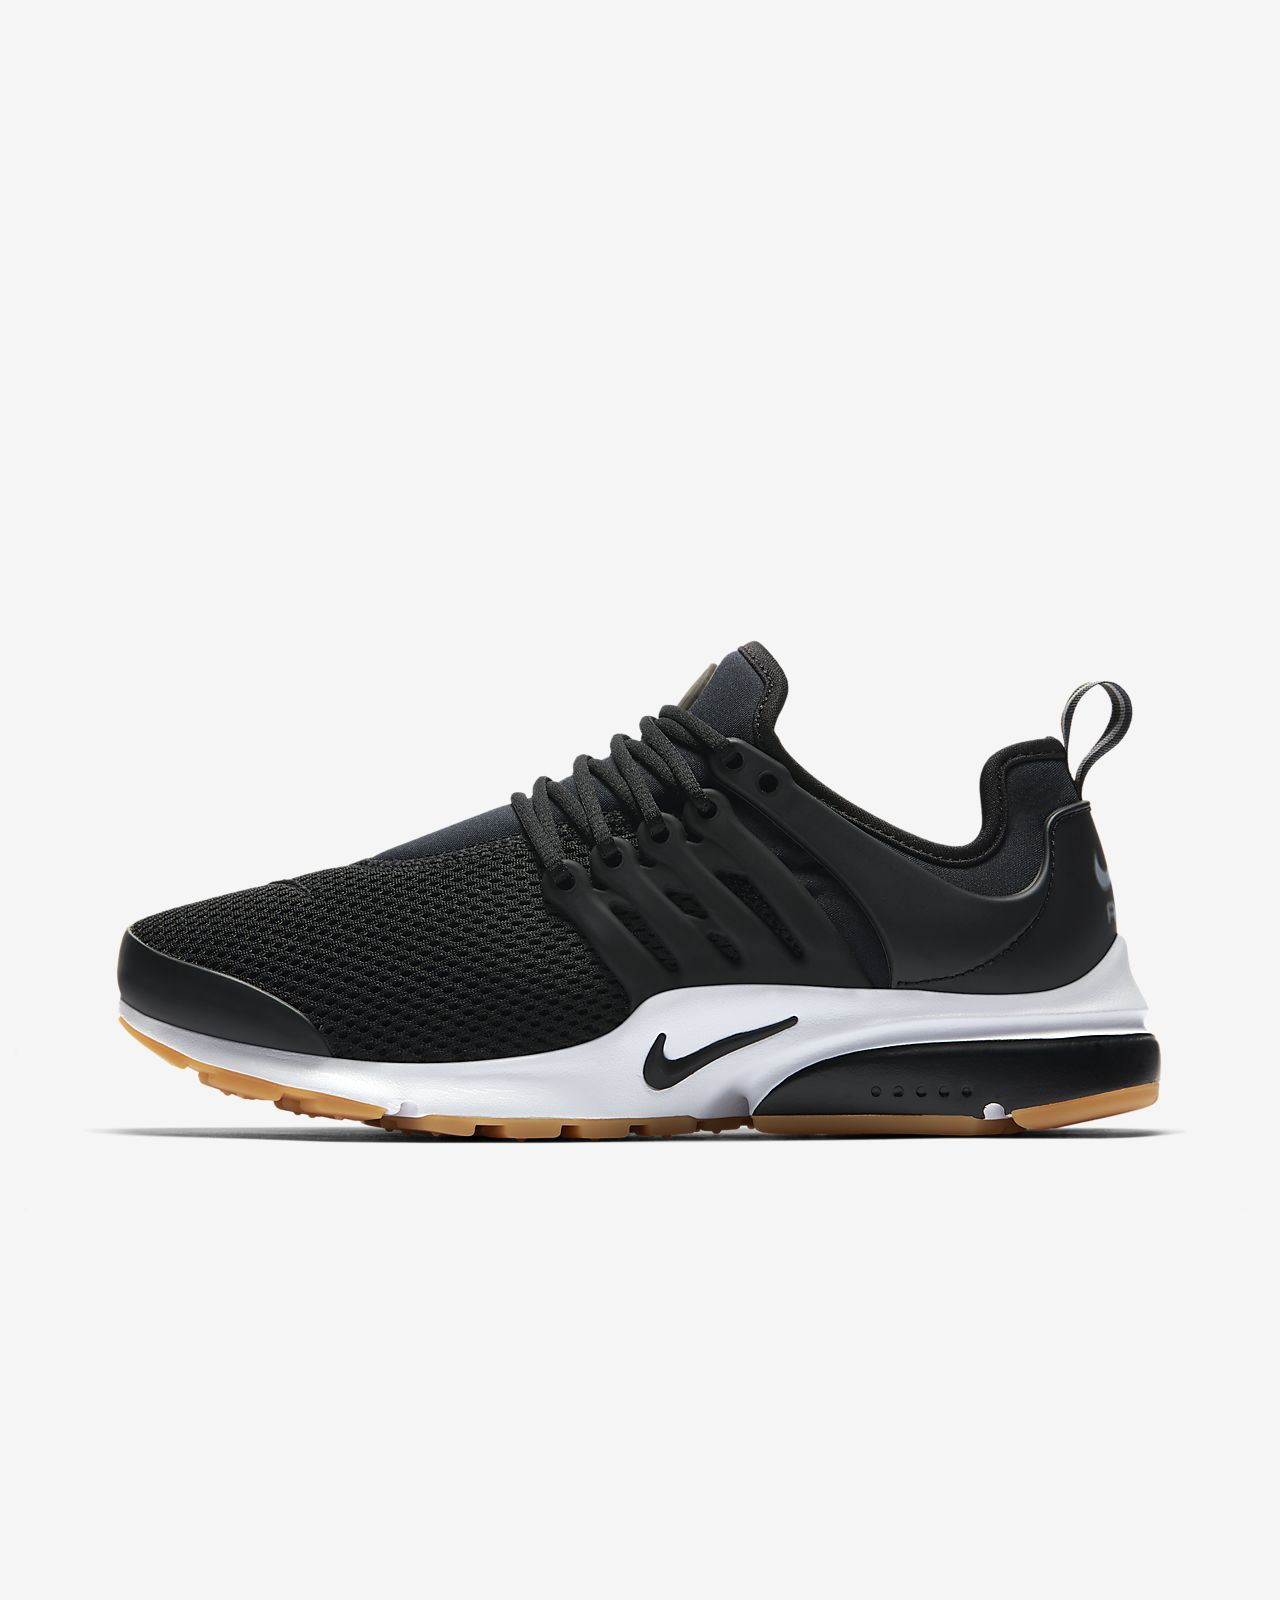 premium selection 2058d 641df Nike Air Presto Women's Shoe